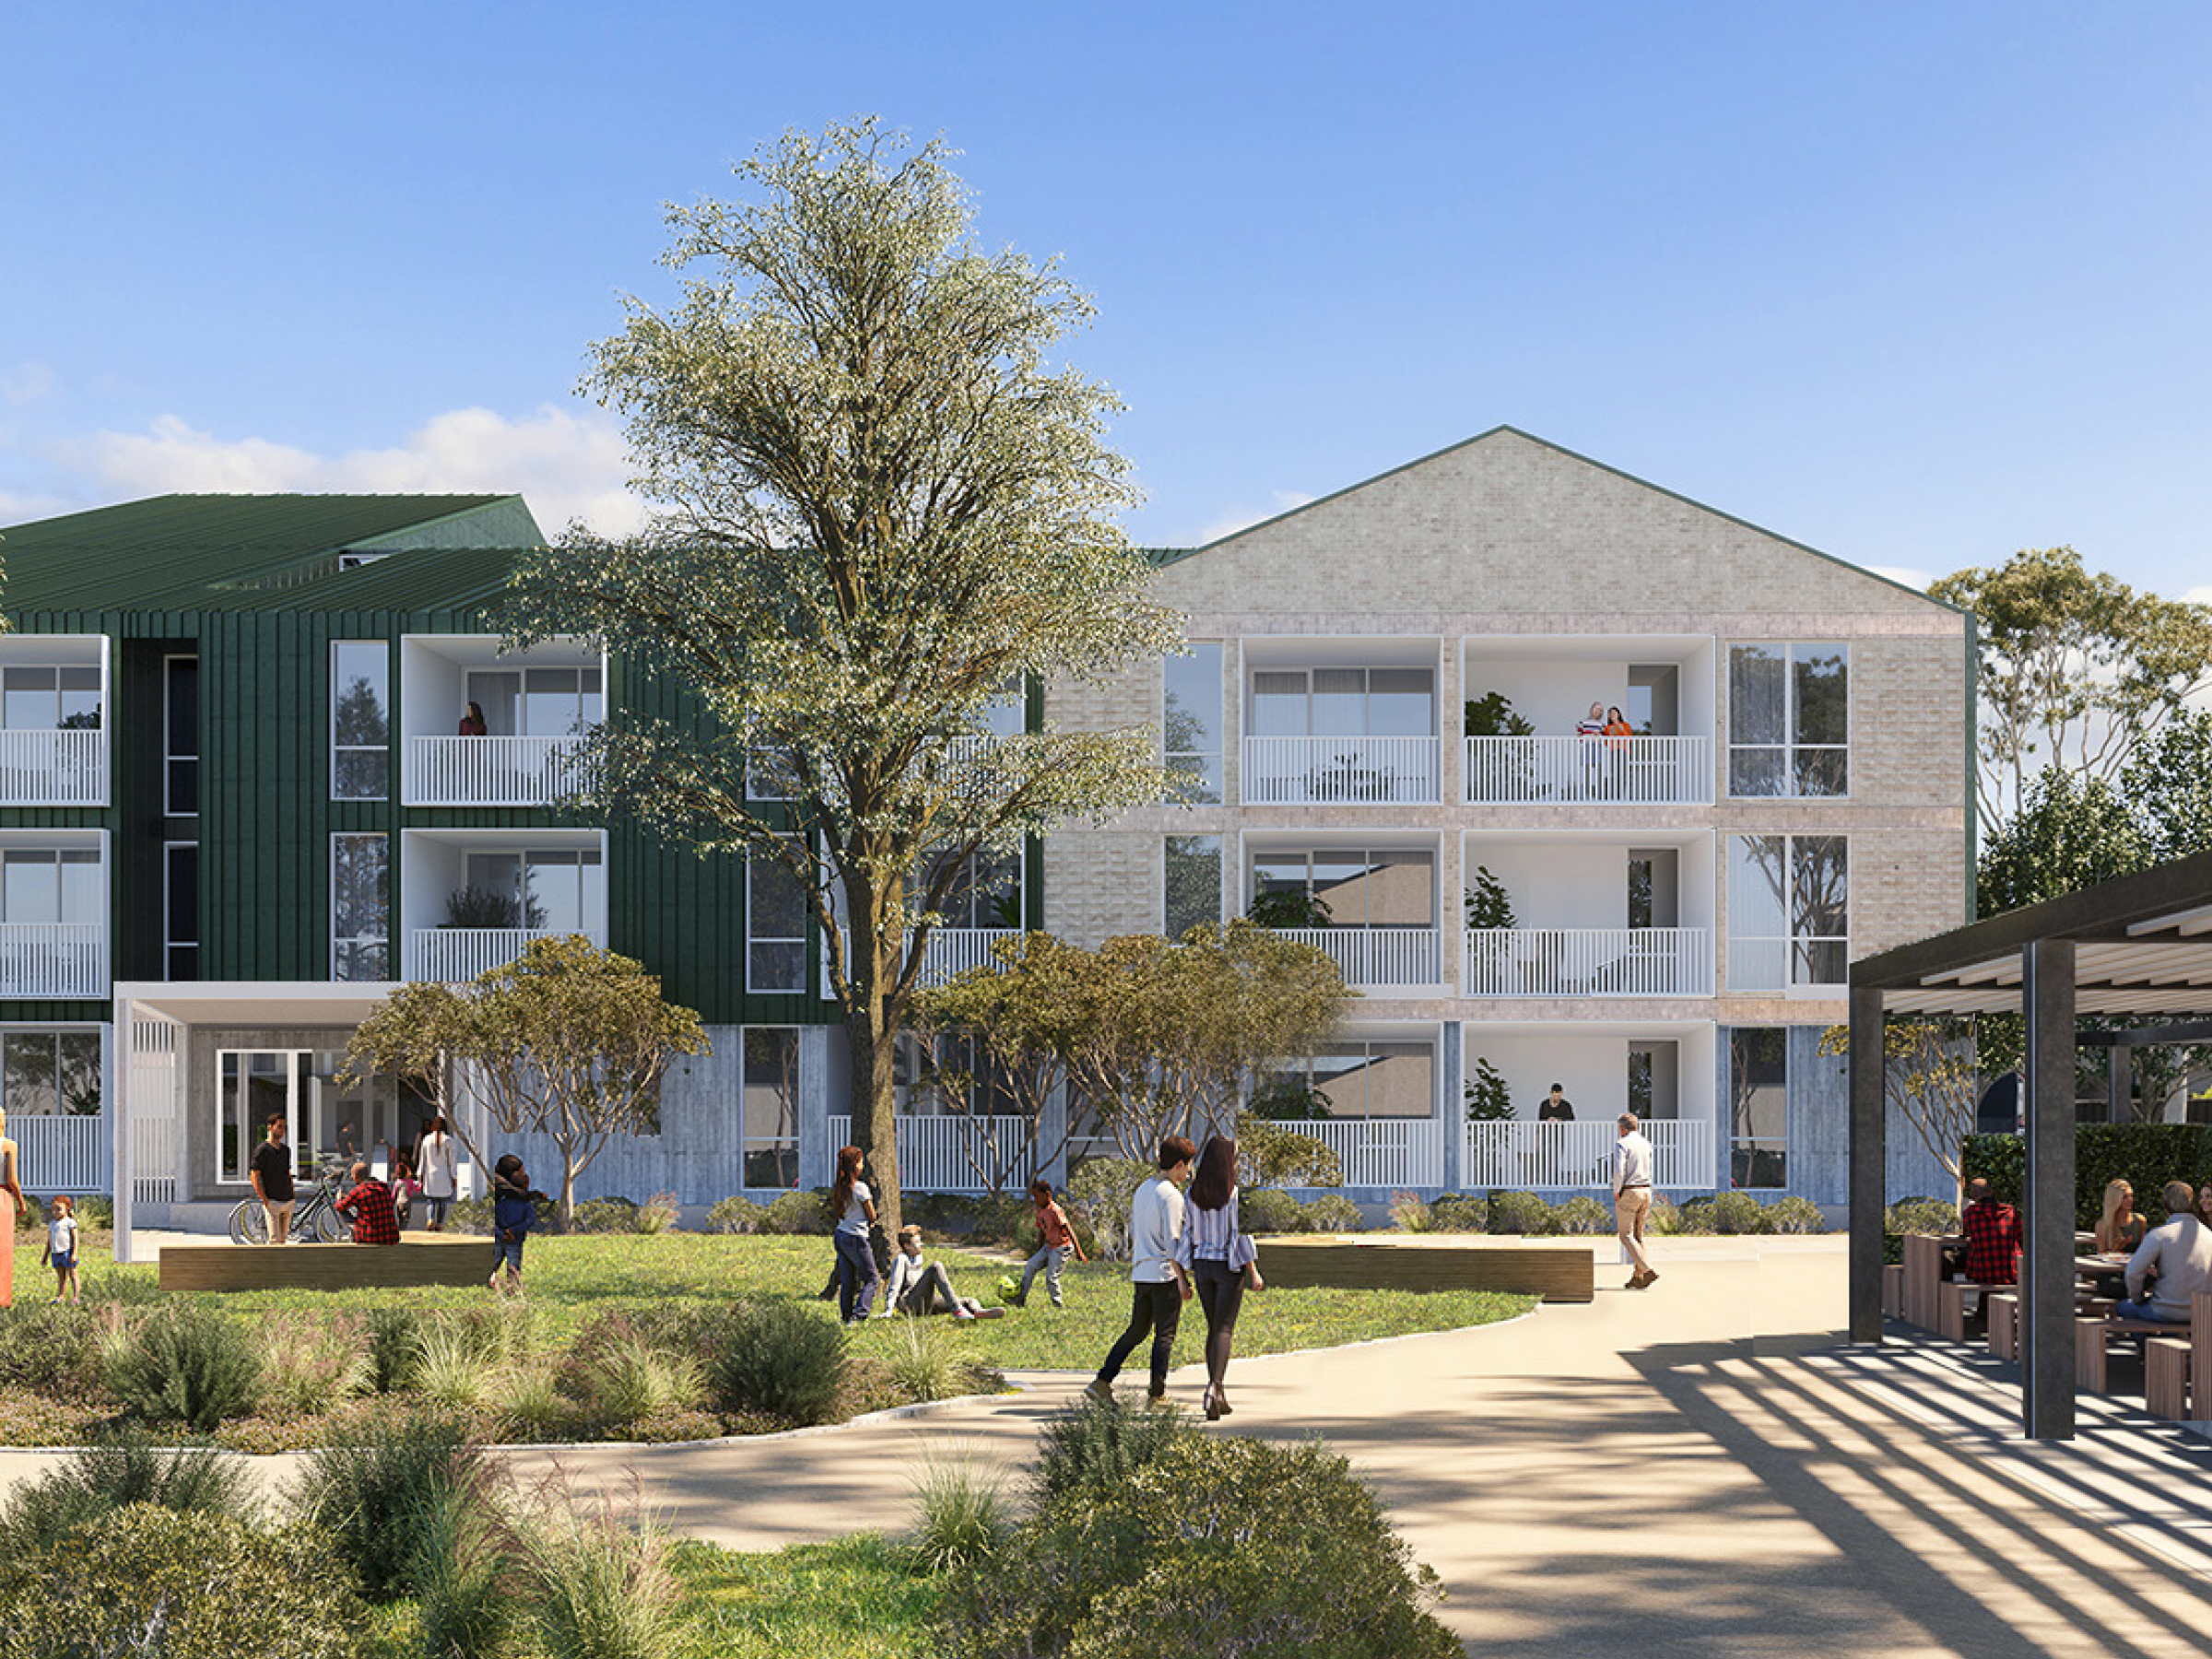 Artist impression looking at the new development from central park